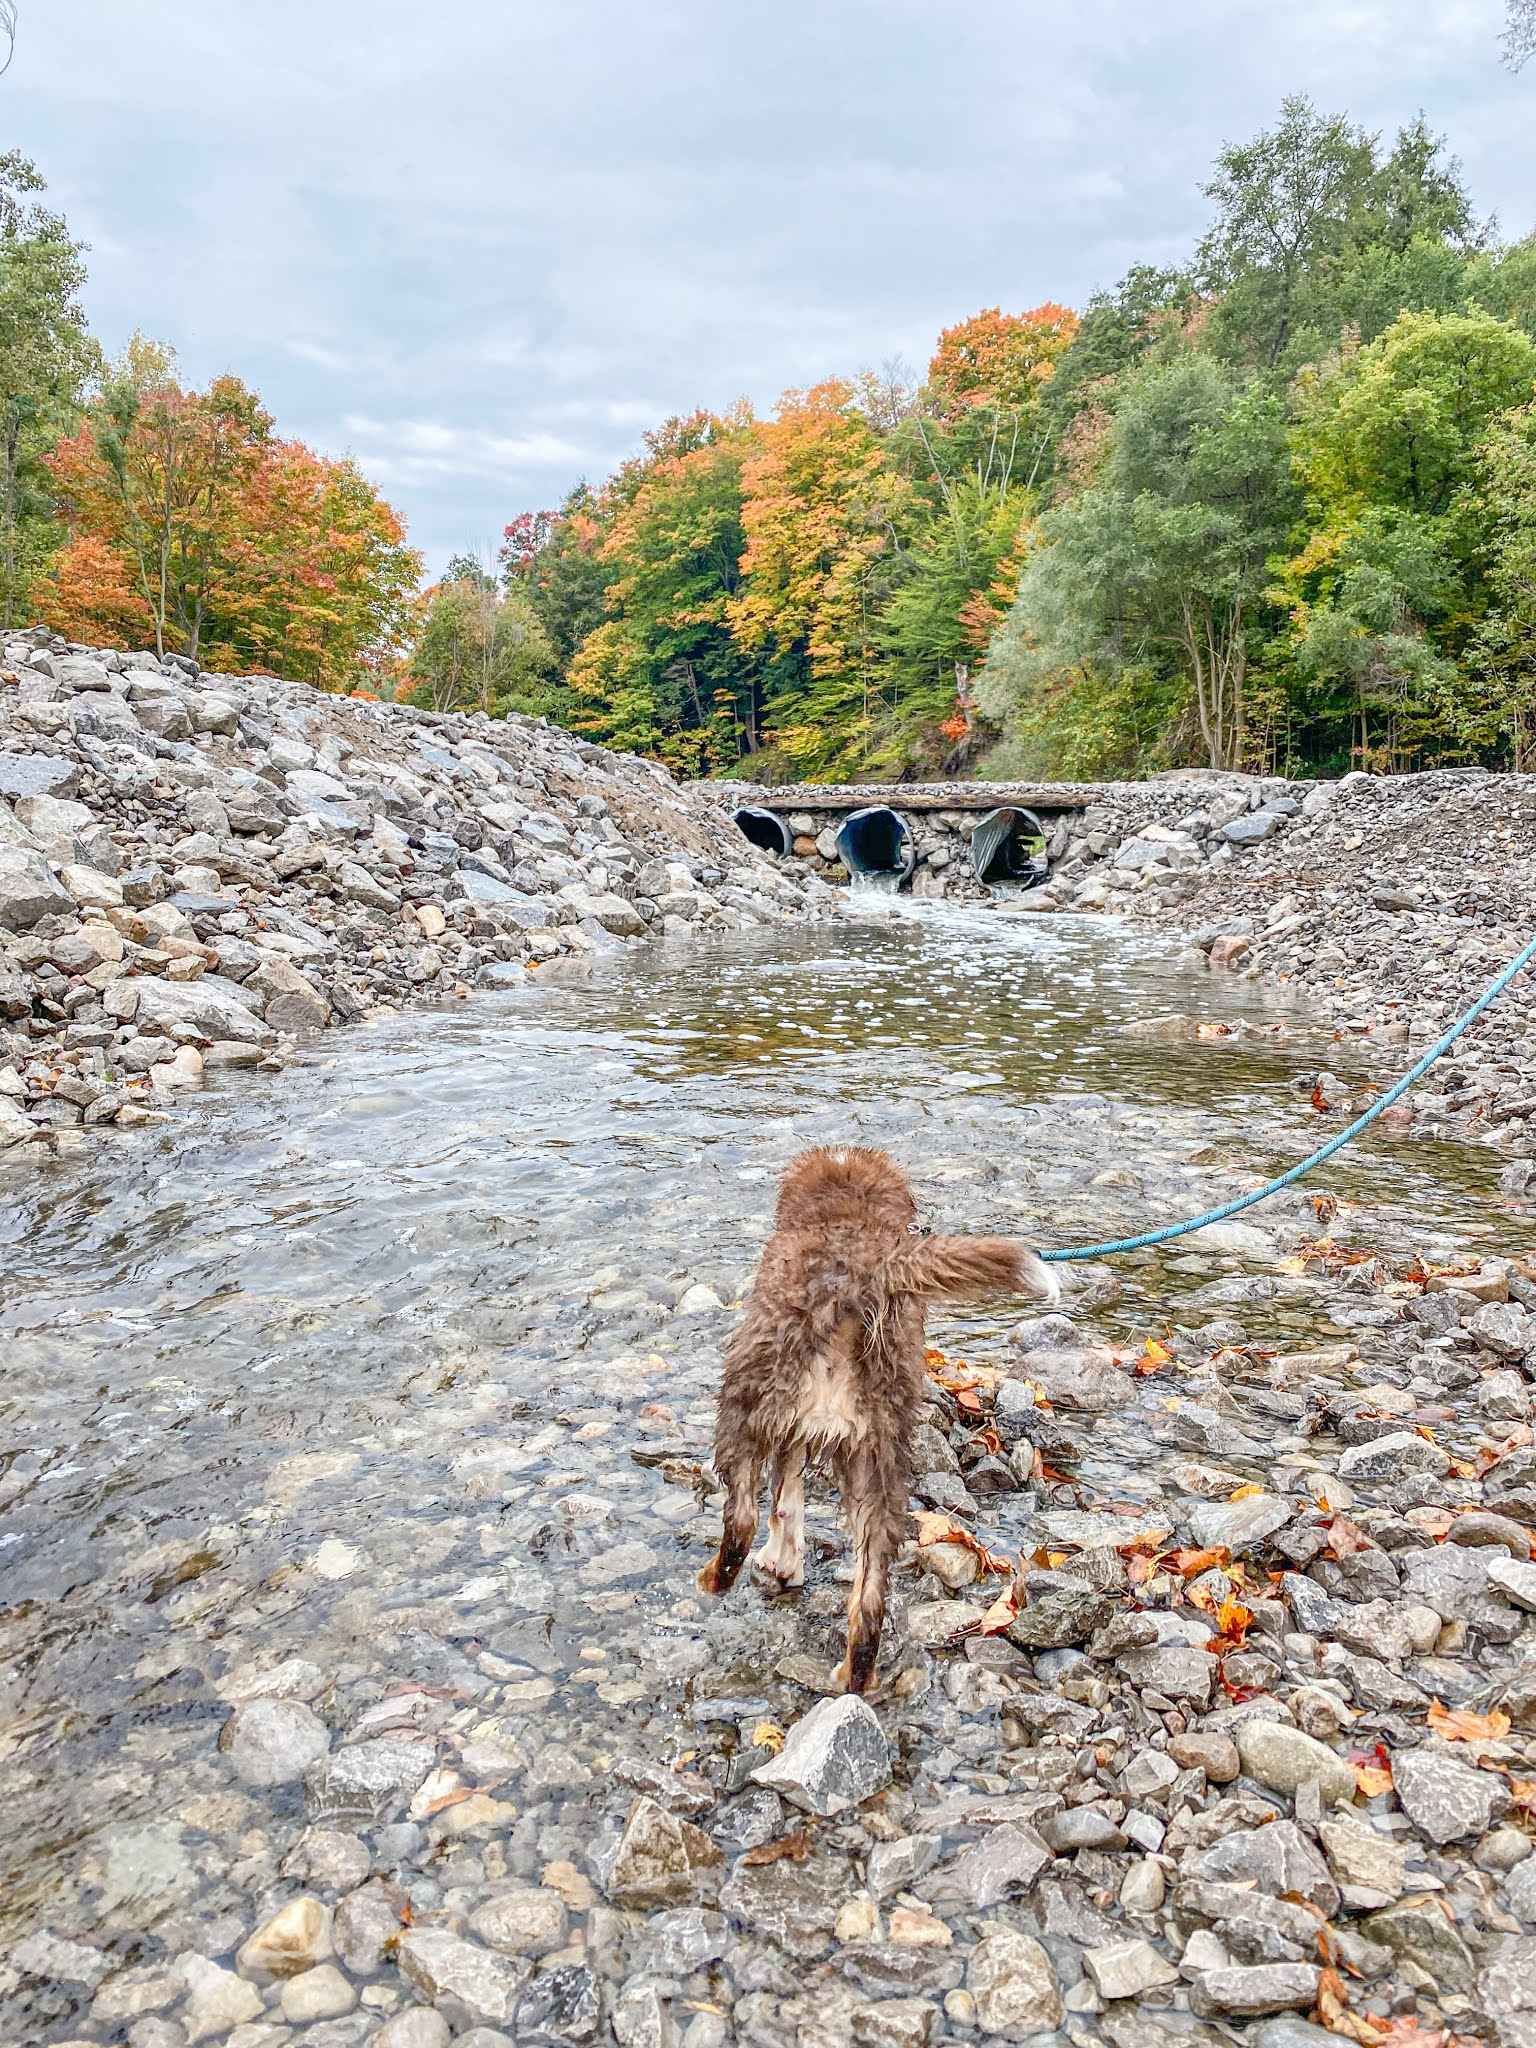 Where to See the Salmon Run in the Greater Toronto Area